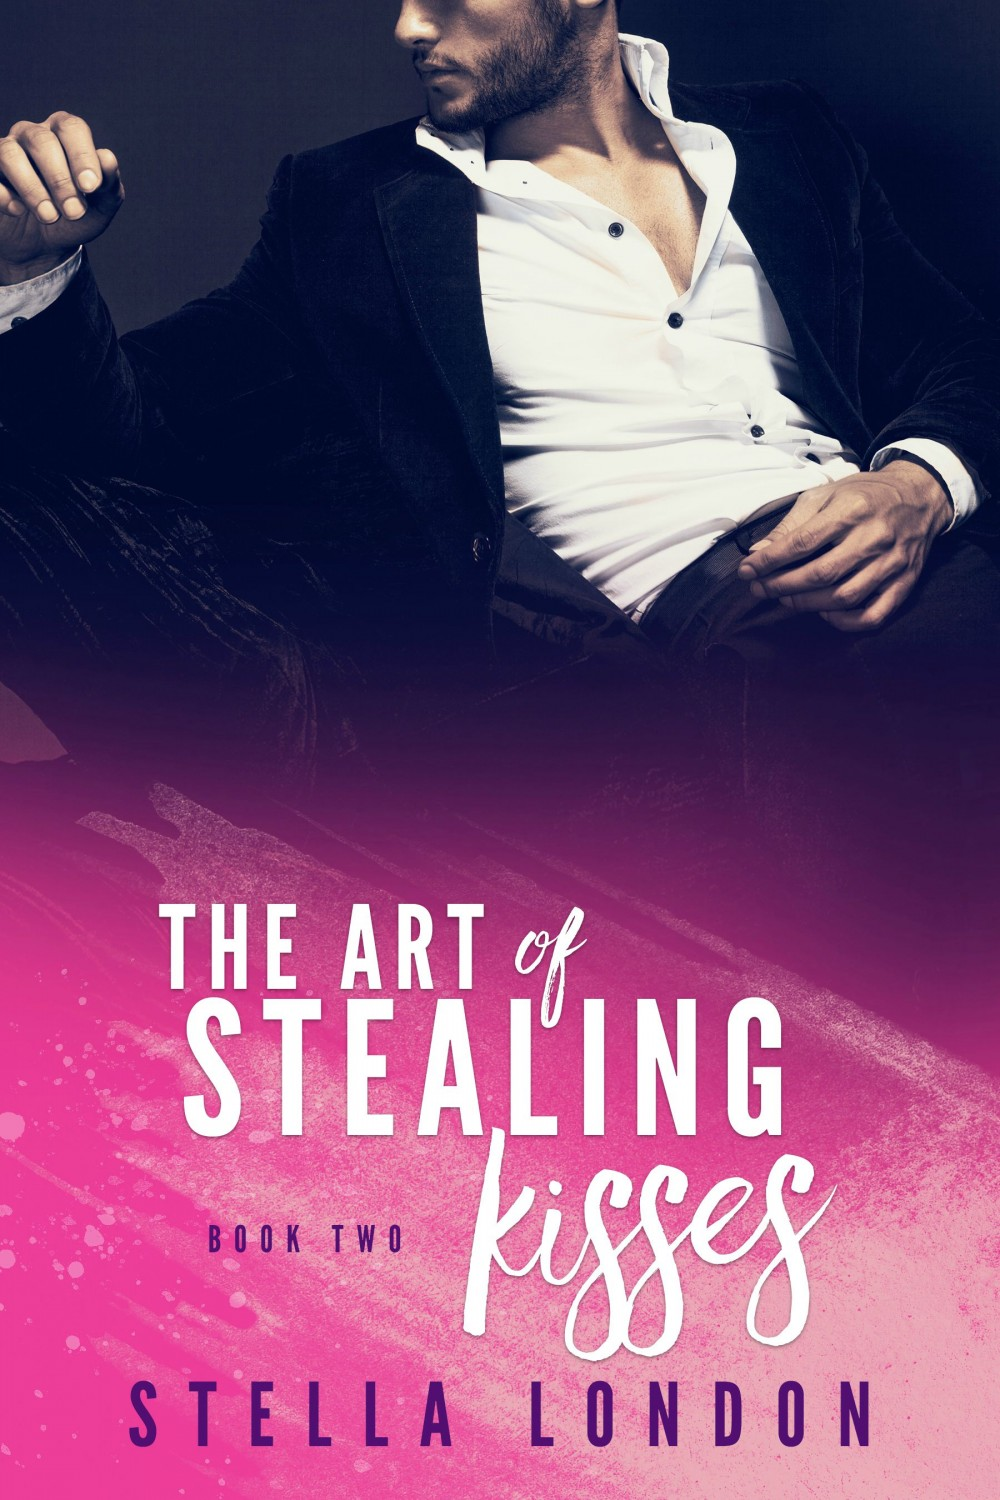 Book 2 Cover - The Art of Stealing Kisses